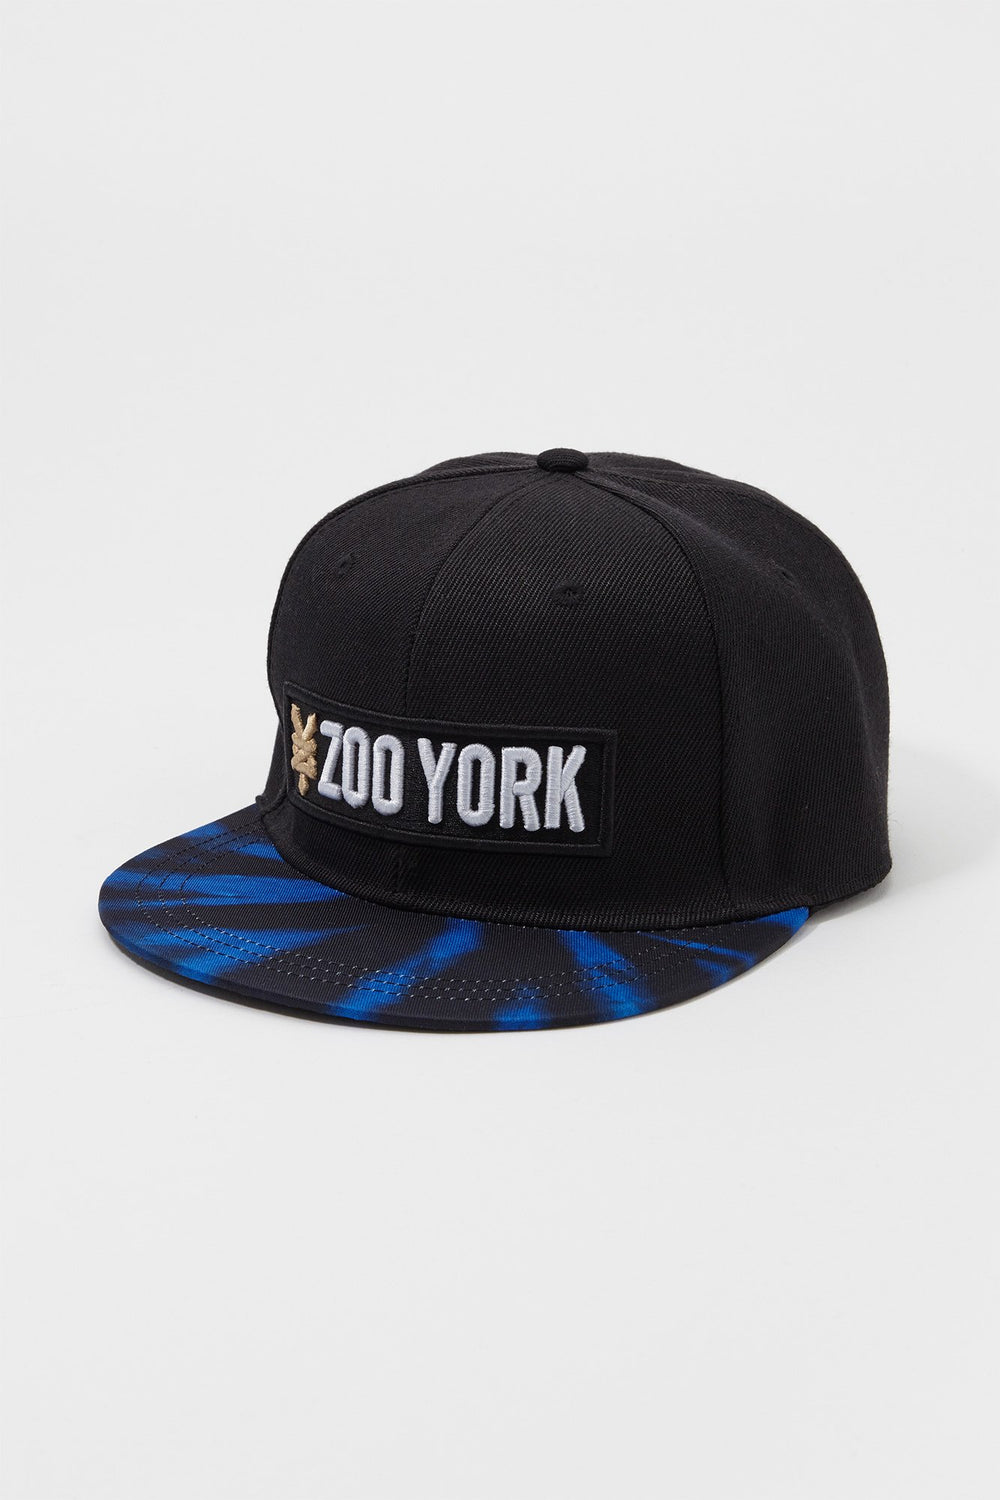 Zoo York Mens Tie-Dye Brim Snapback Hat Blue